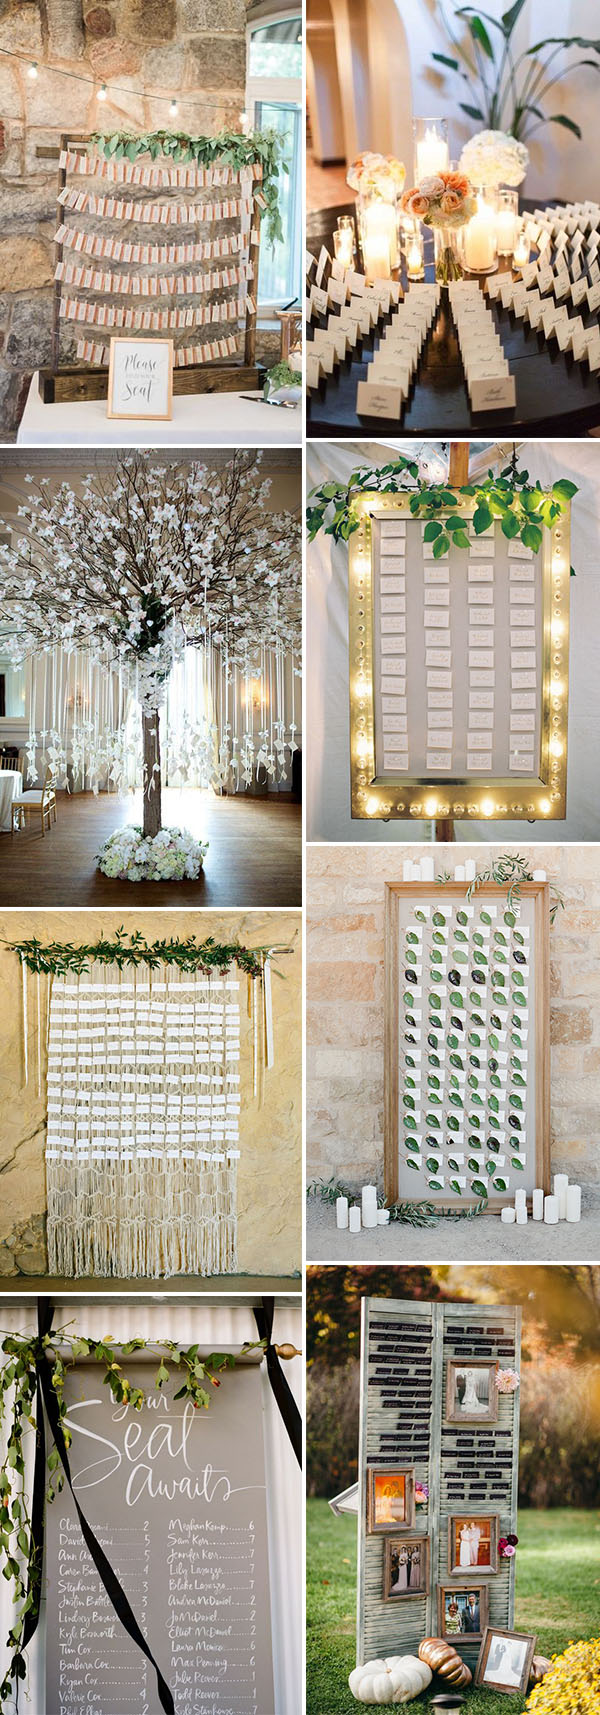 10 Chic Ideas to Display Your Wedding Seating Chart & Escort Cards